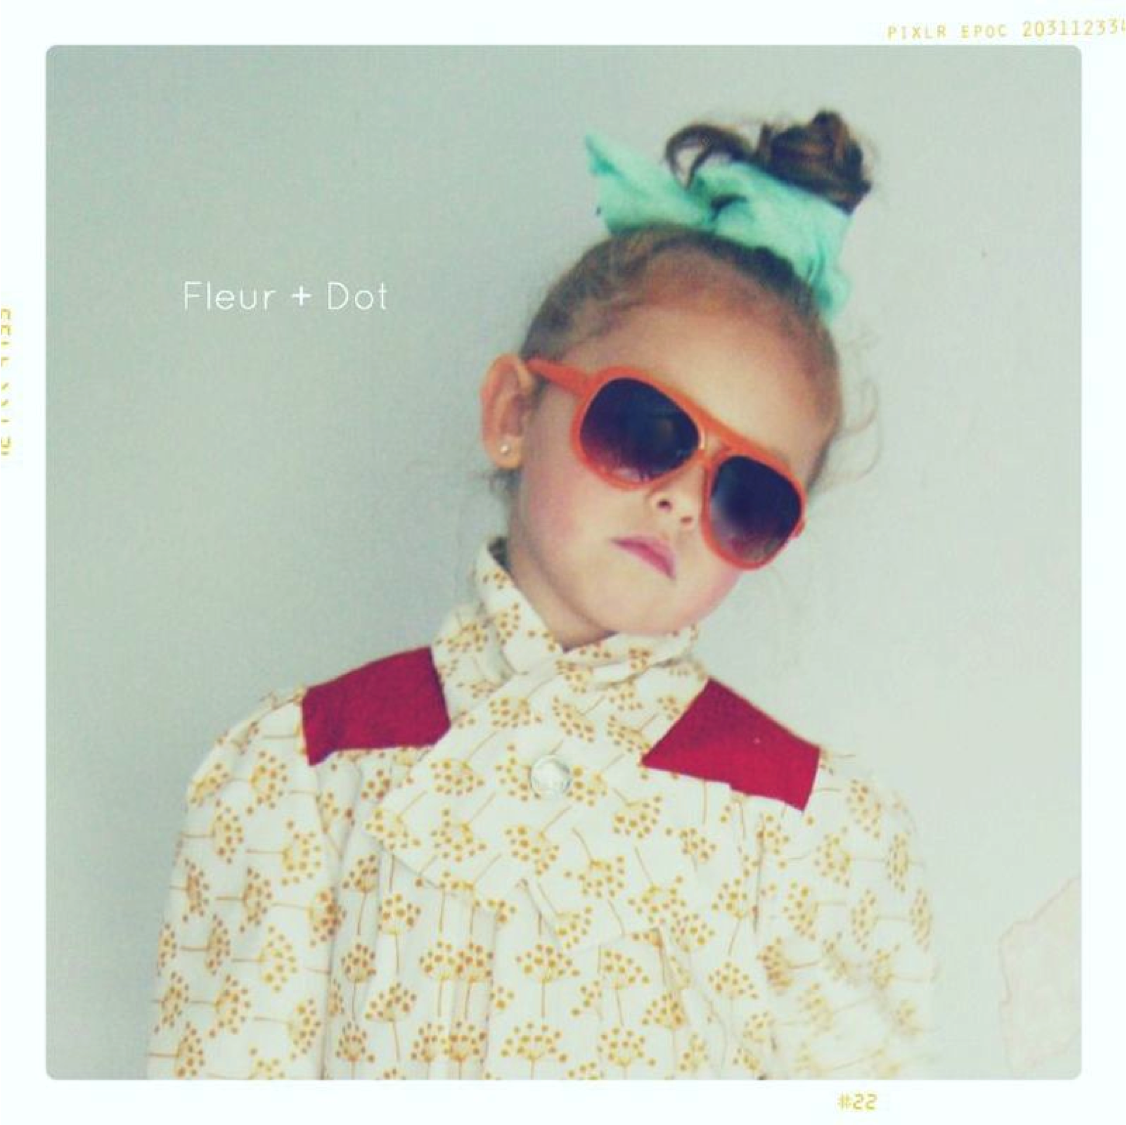 childrens editorials